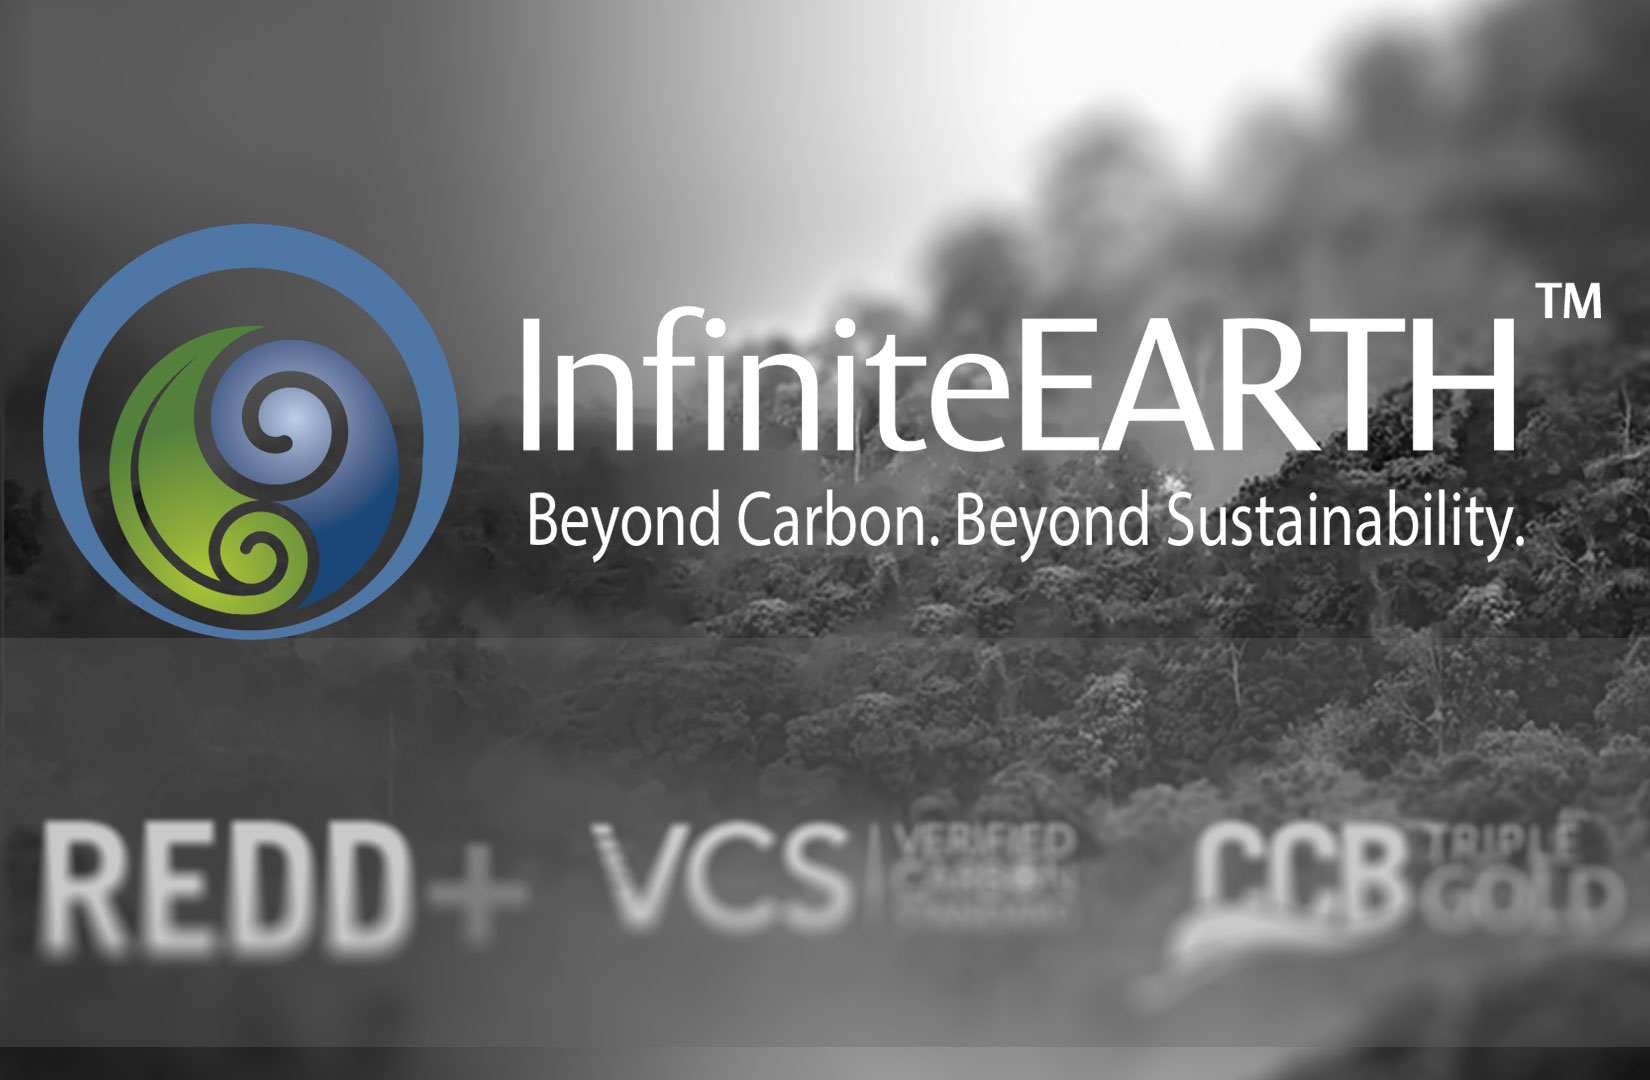 InfiniteEARTH offers Triple Gold Certified REDD+ Carbon Credits to individuals and corporate interests looking to accomplish a zero-carbon-footprint mitigation rating